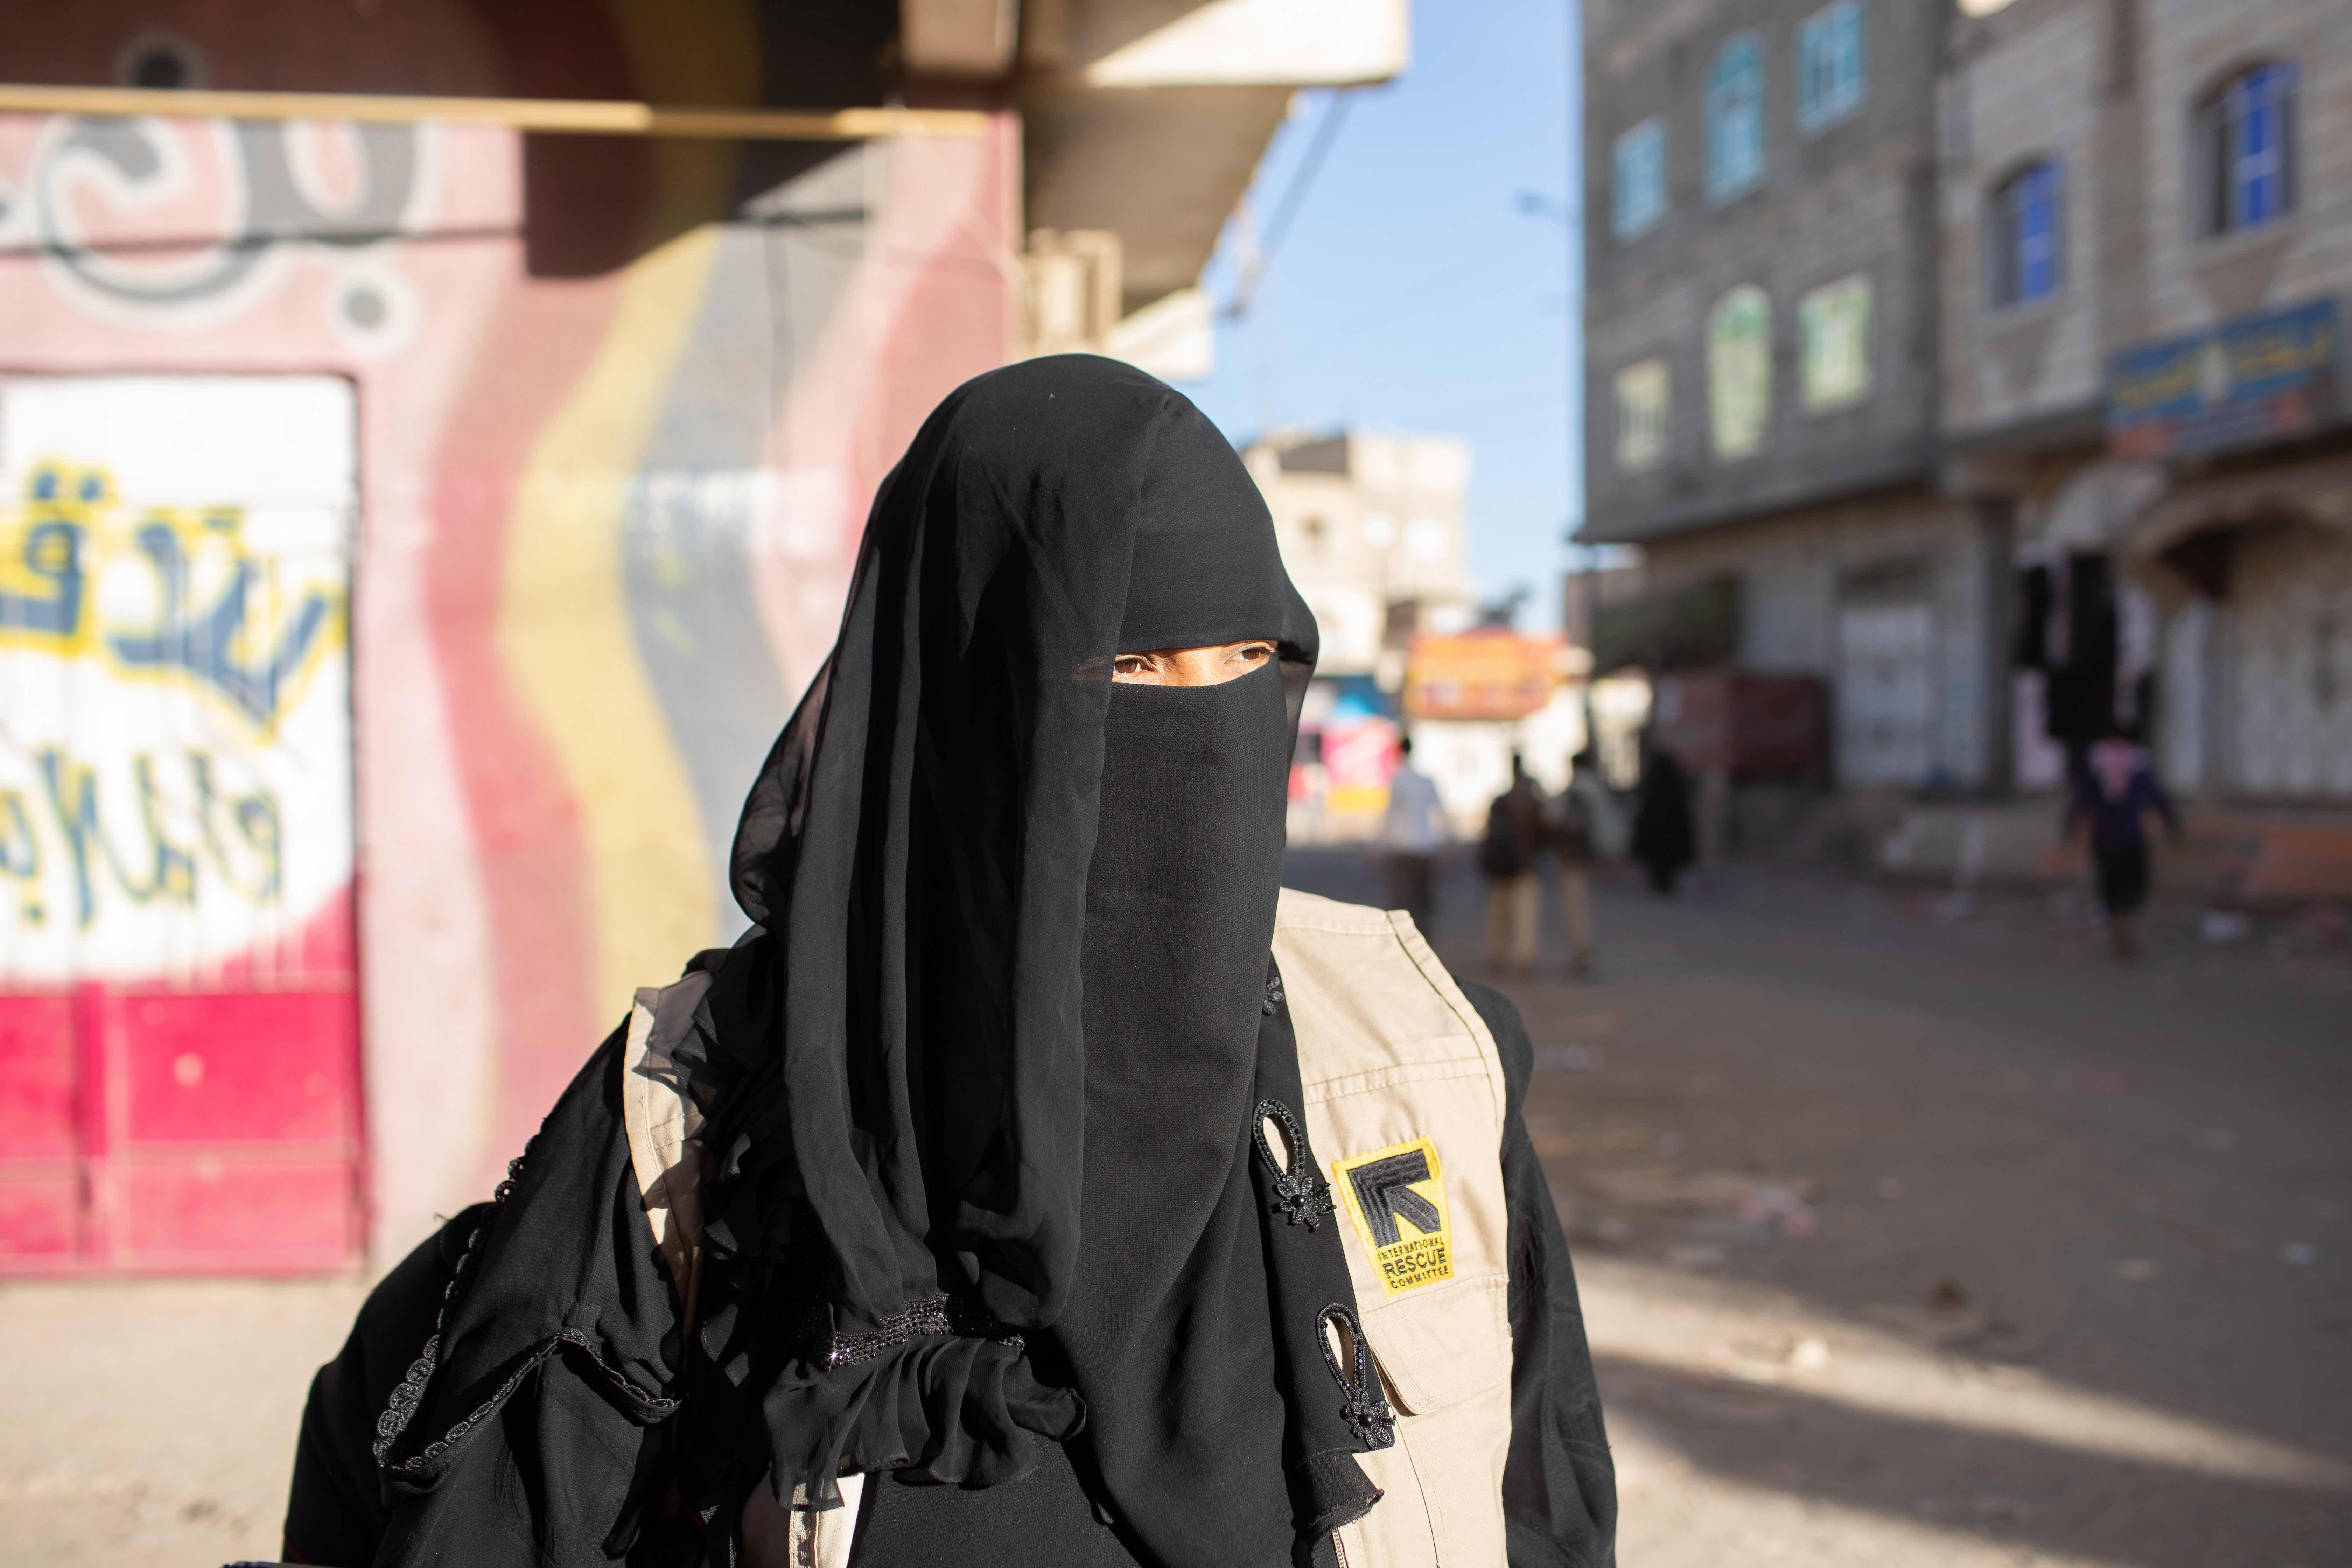 Tahani is fully veiled and is walking in a street